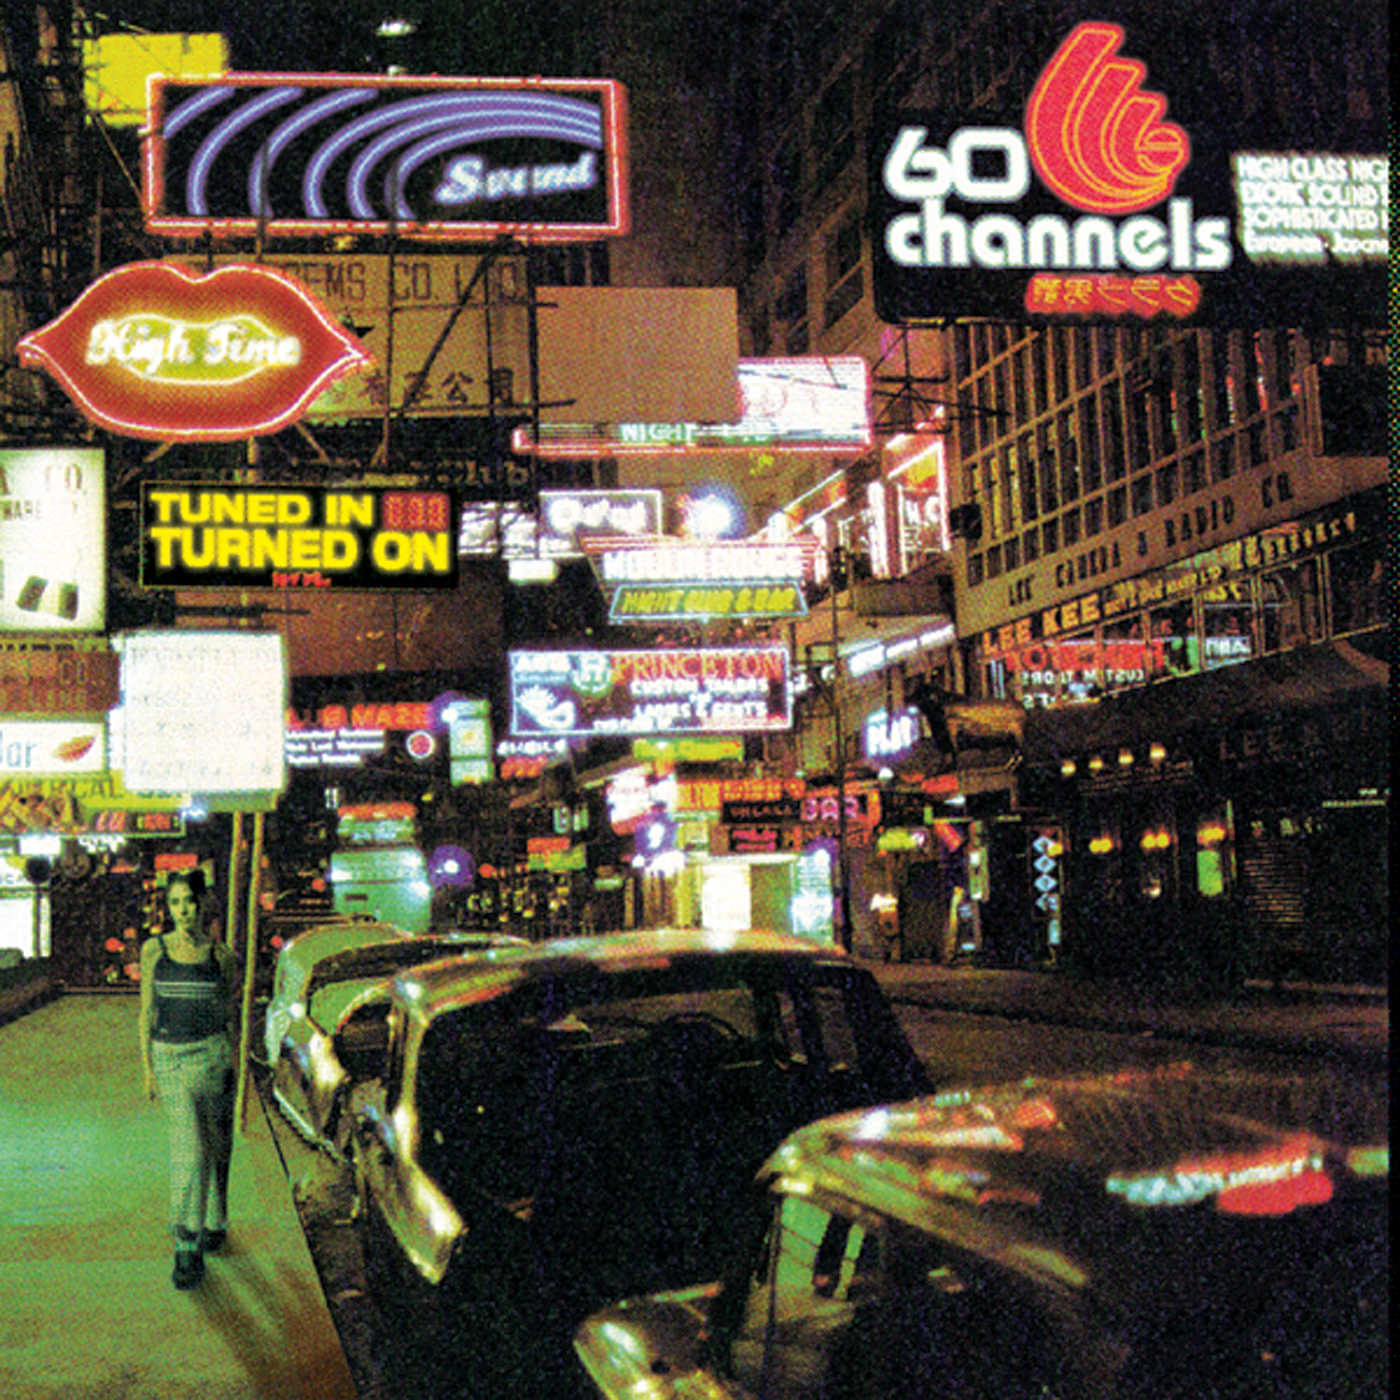 60 Channels - Tuned In Turned On - album